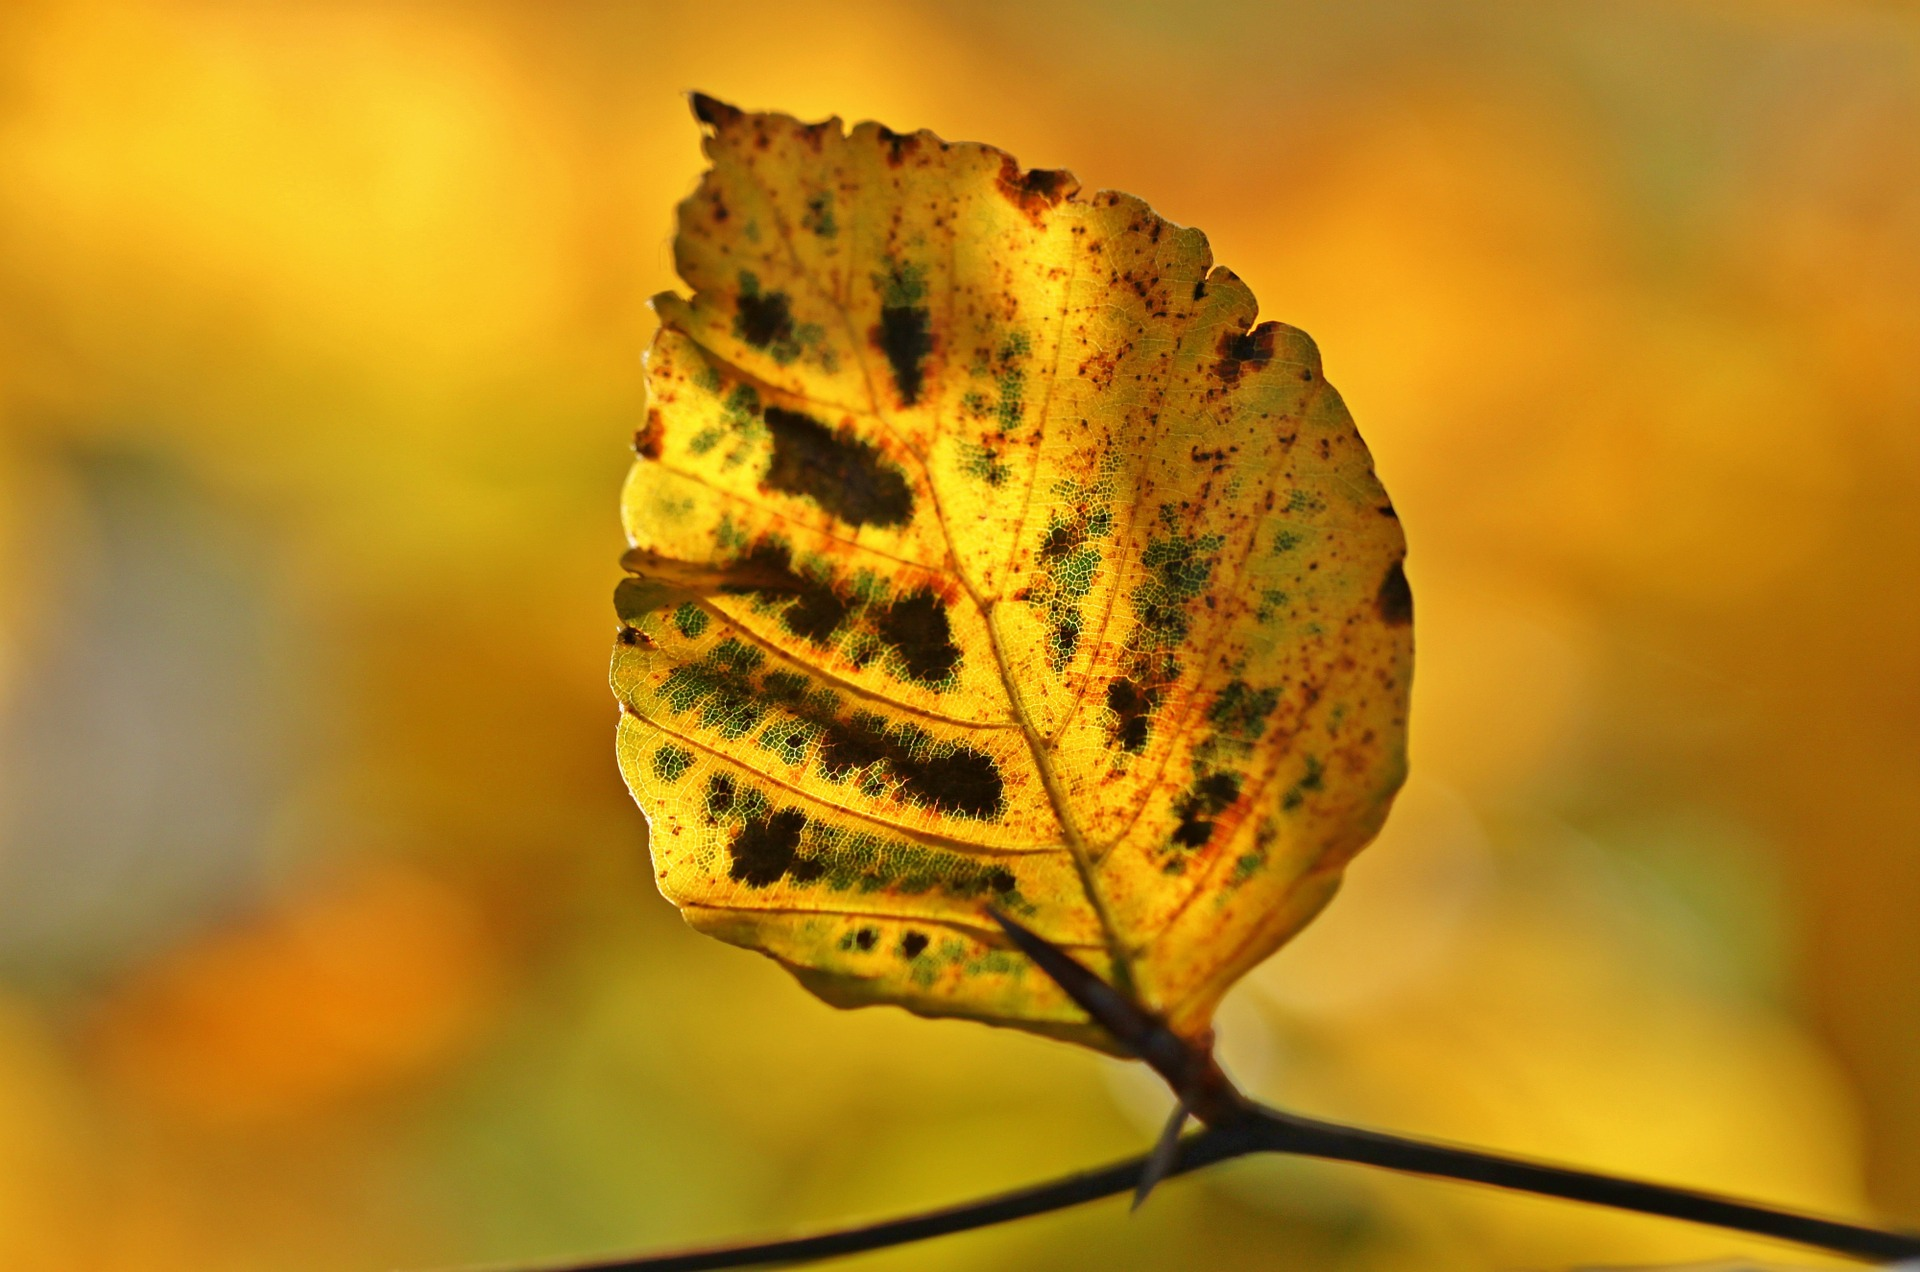 yellow leaf with black lesions